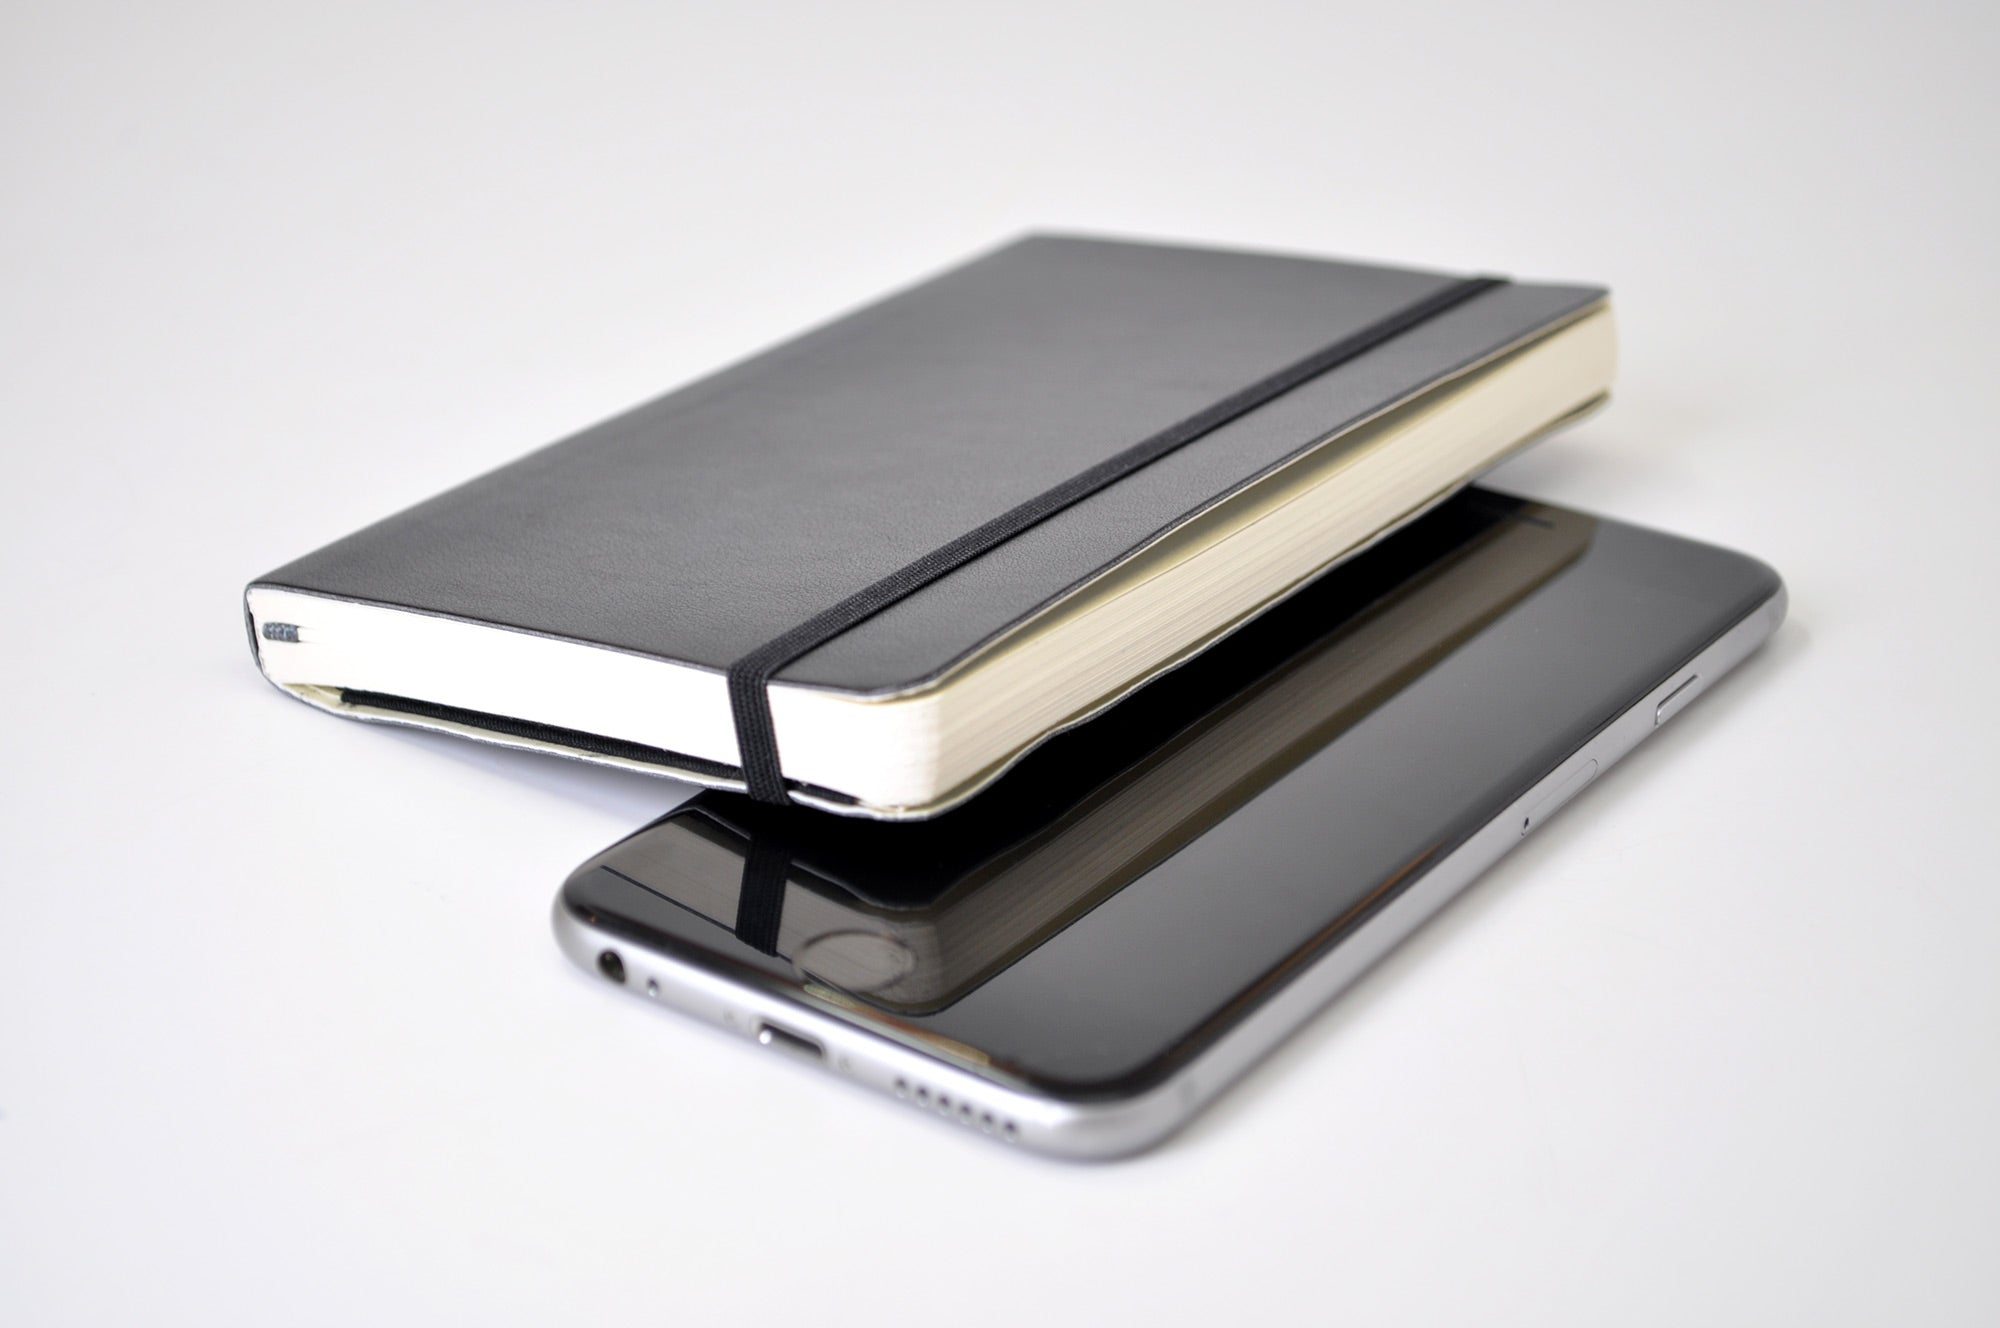 pocket Moleskine softcover and iphone smartphone size